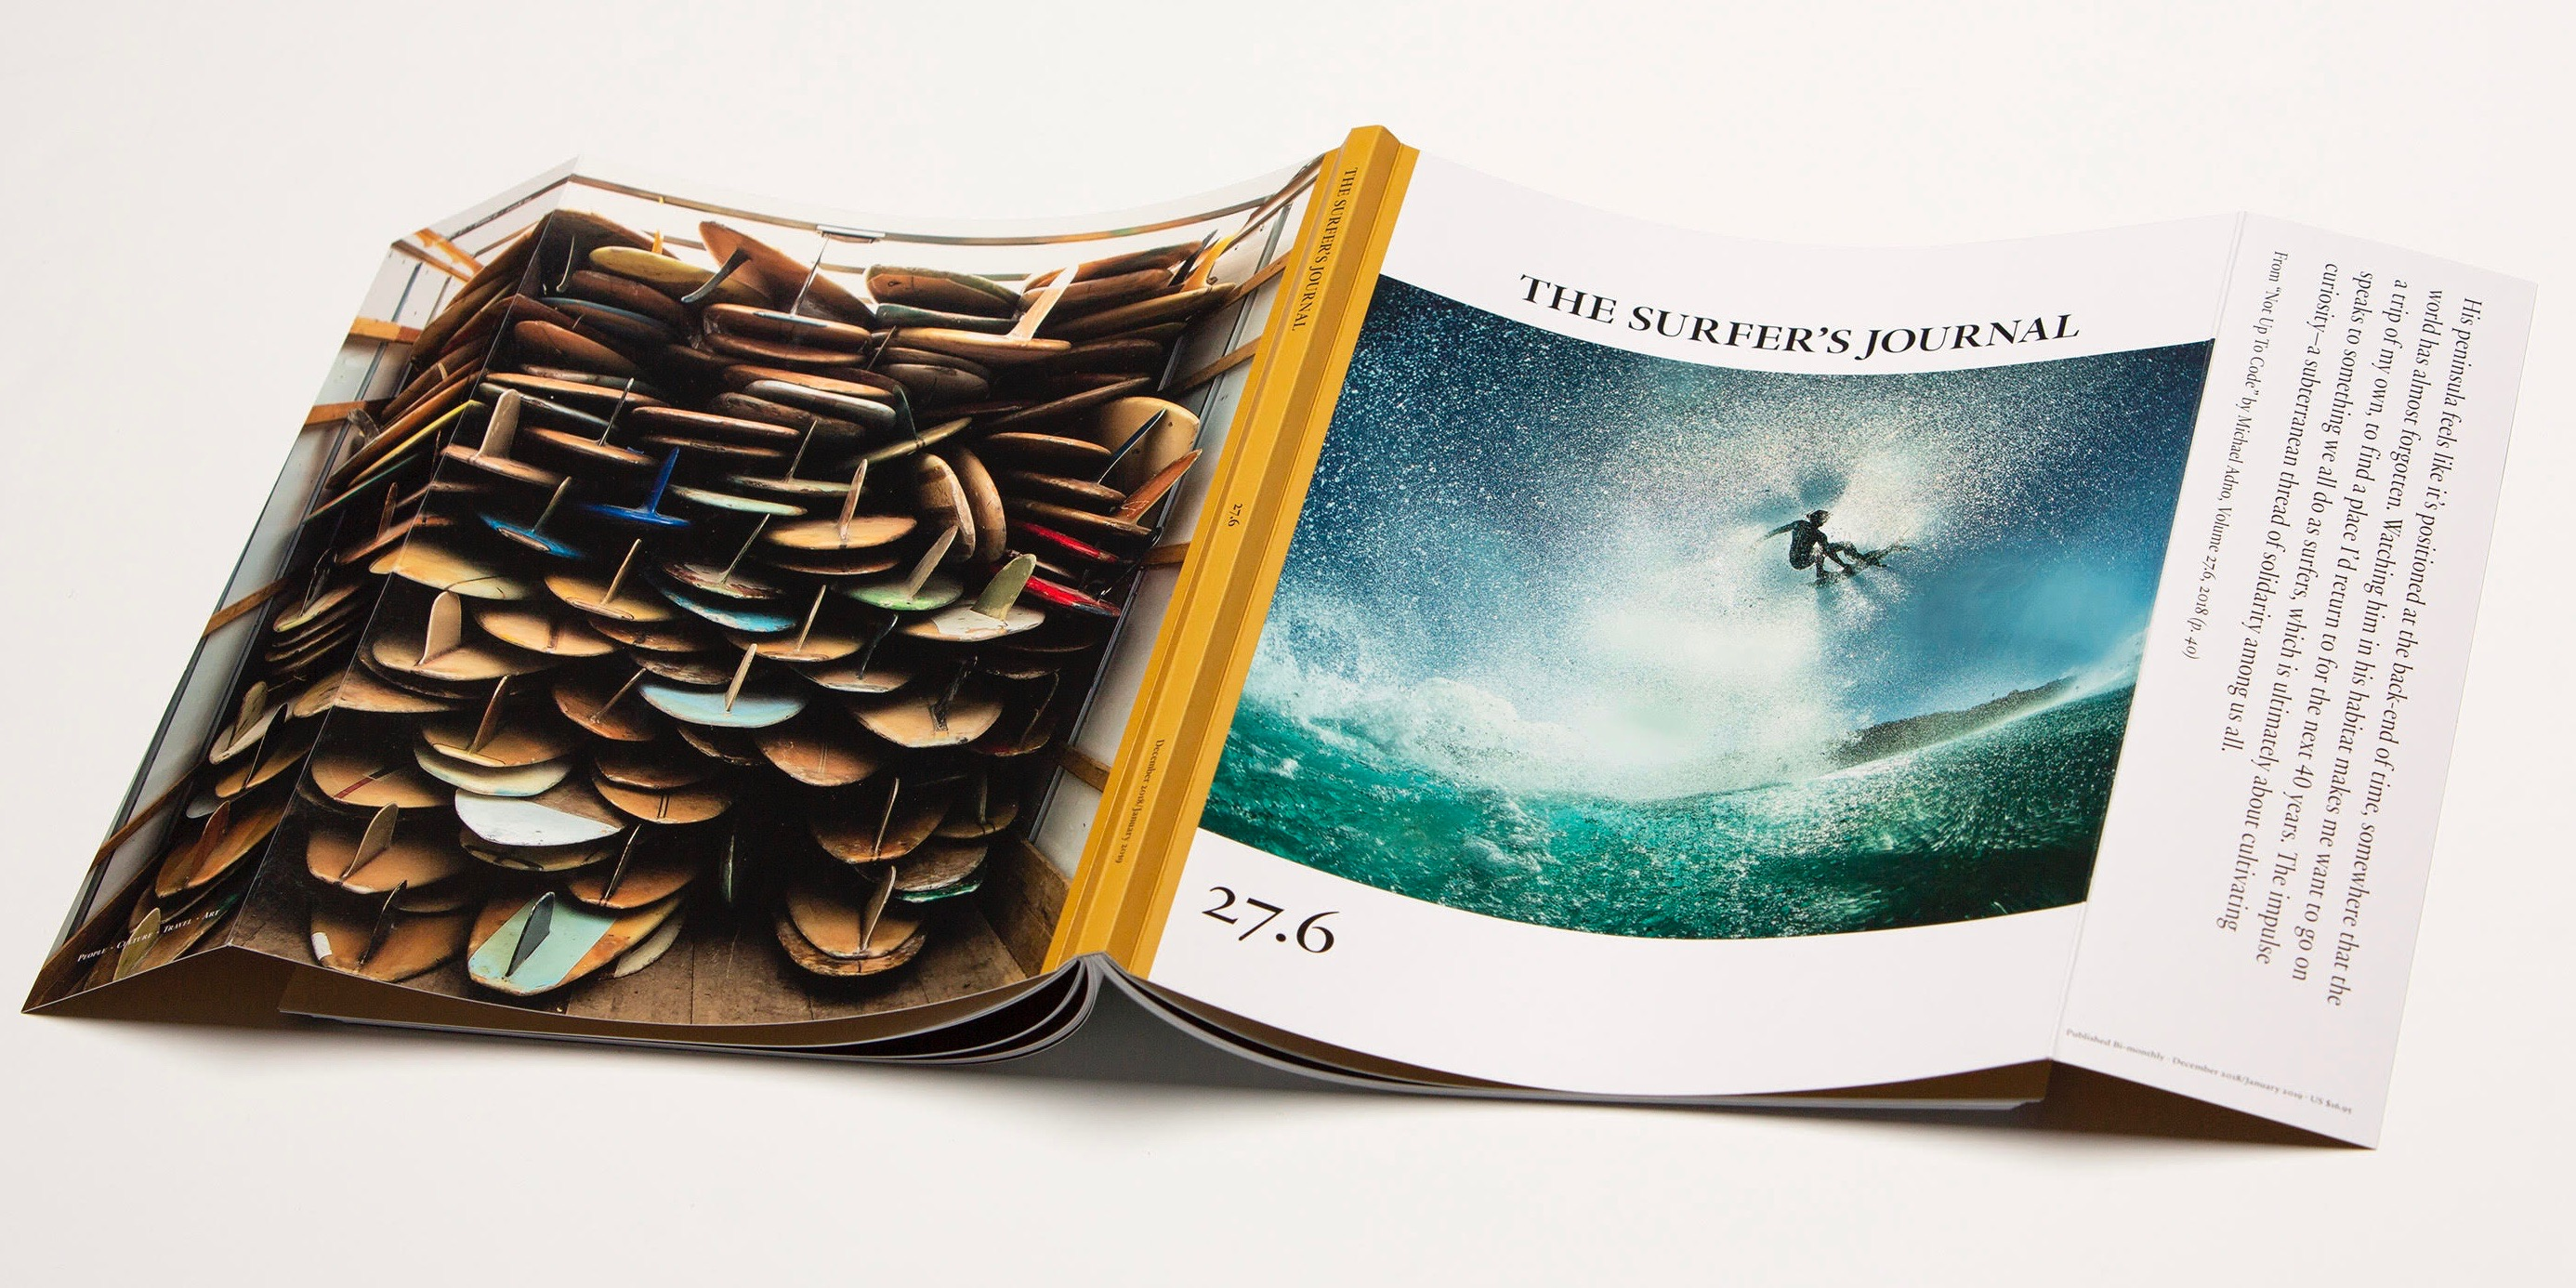 Tim Cook shows off latest Surfer's Journal magazine cover shot with iPhone